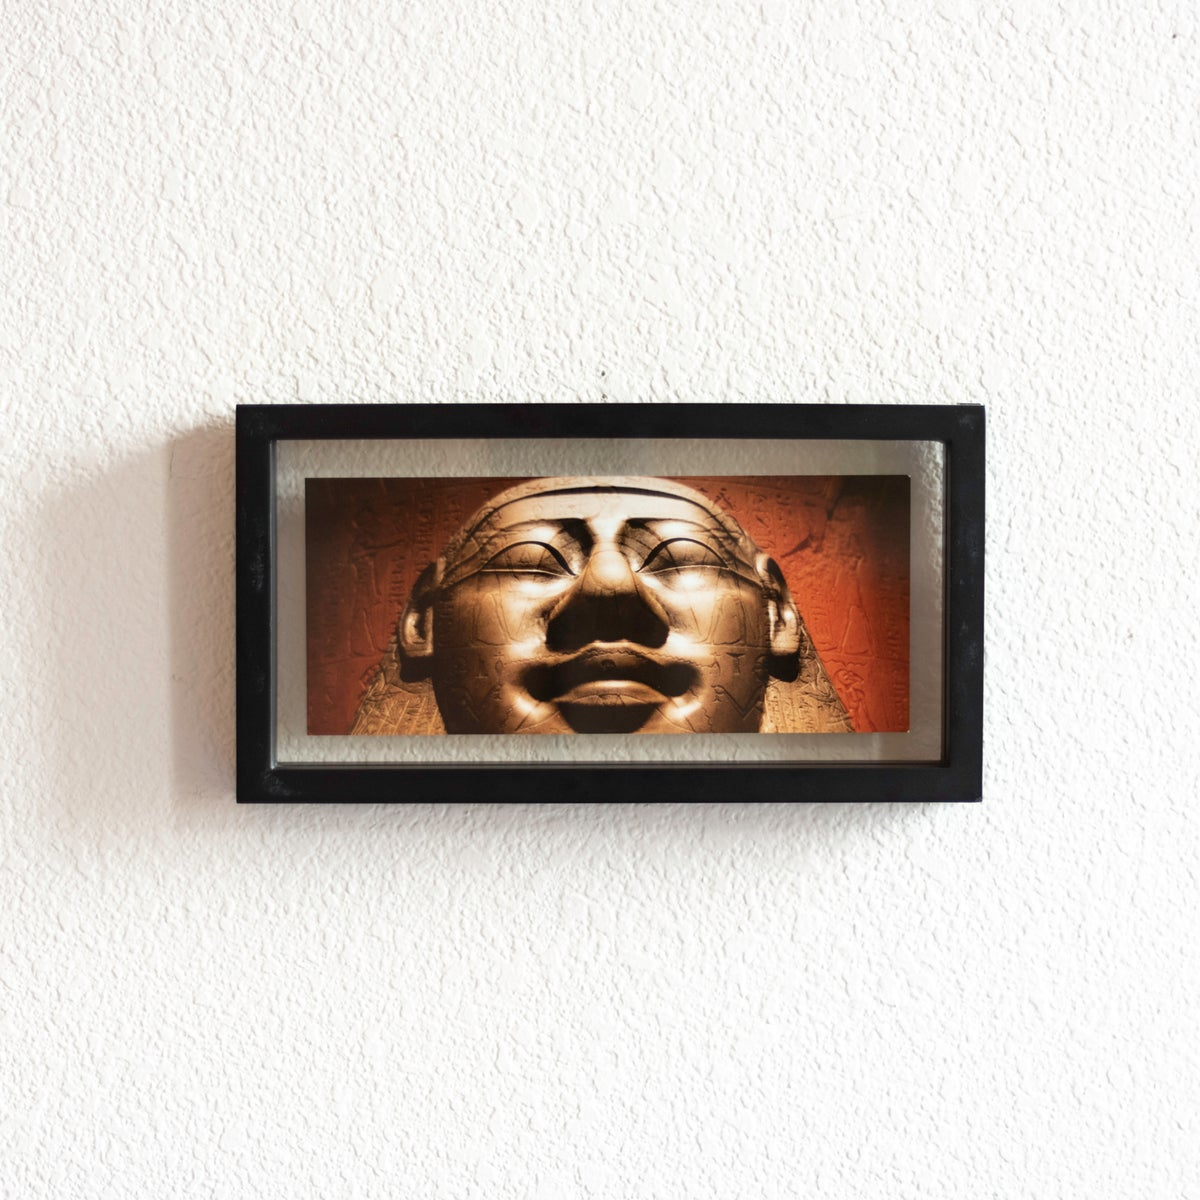 Image of Throw Yourself Into the Vessel of Possibilities (framed)